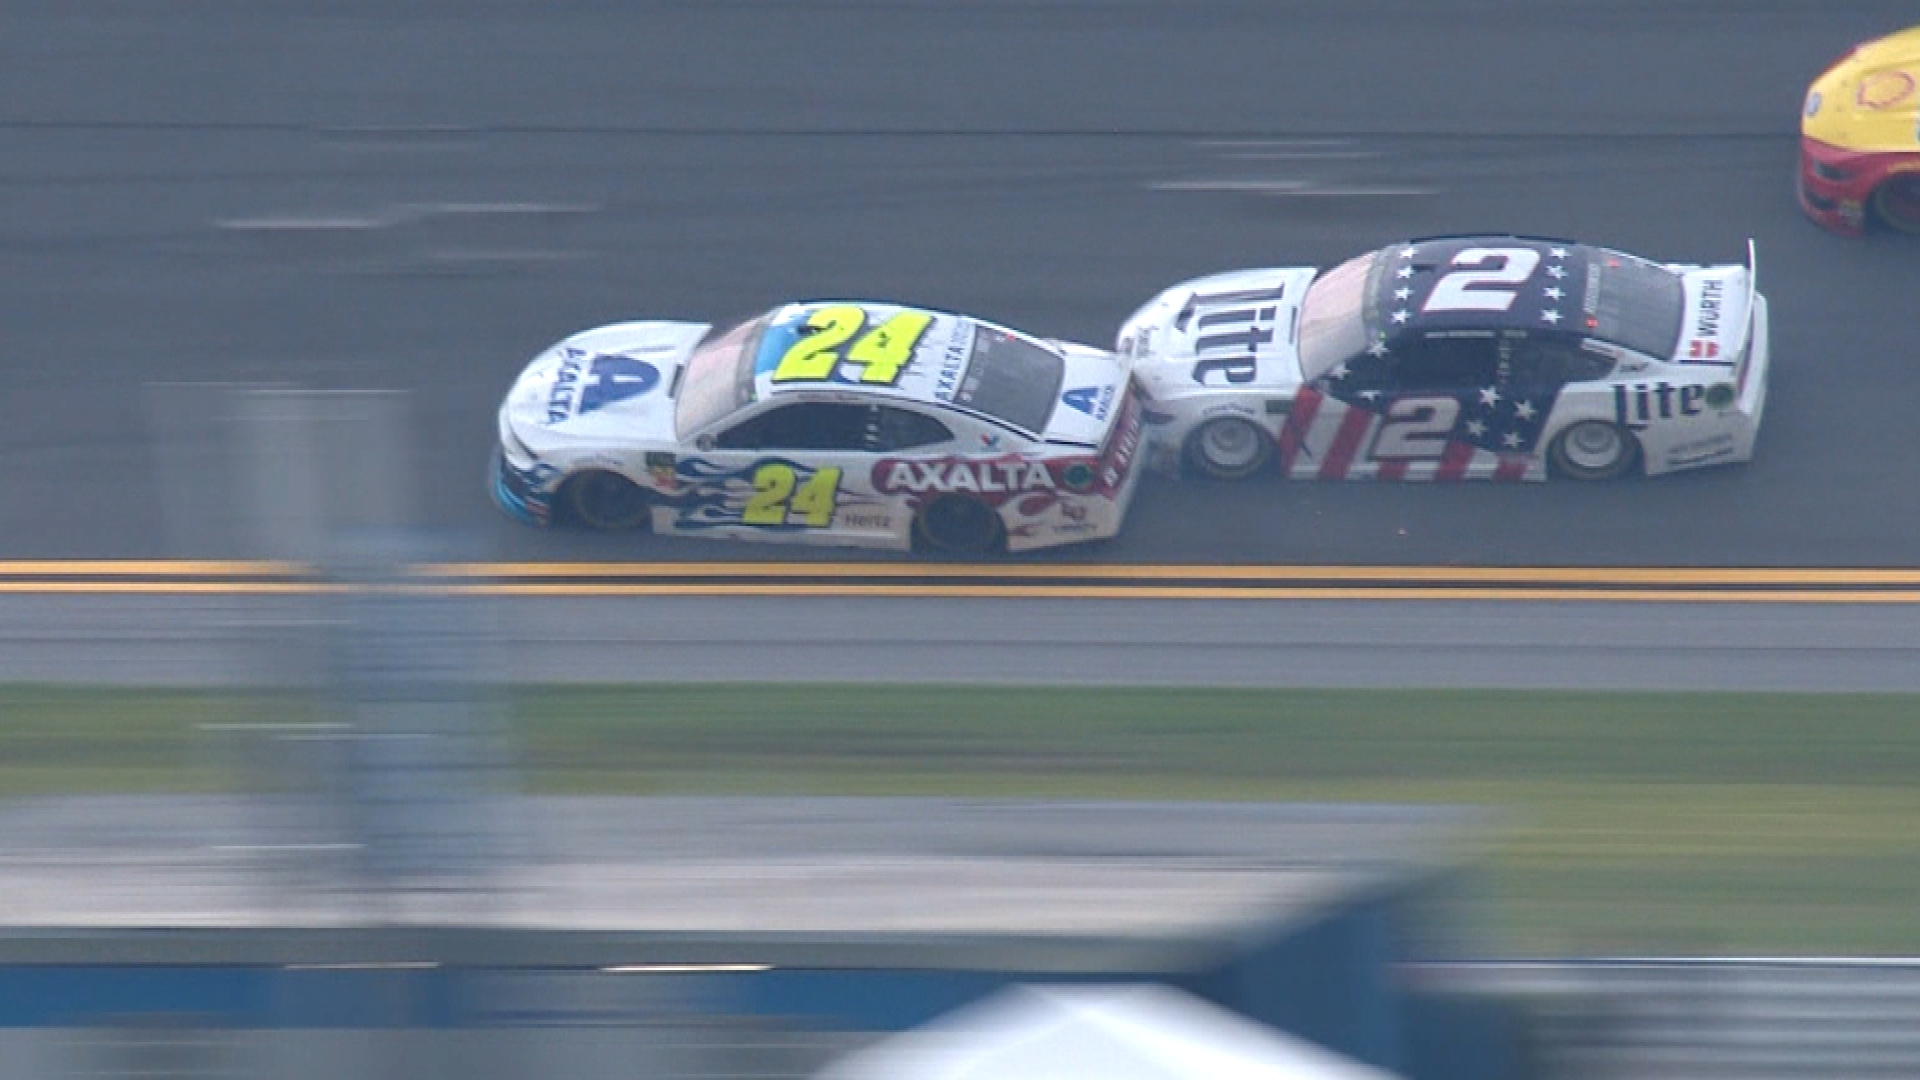 NASCAR: Brad Keselowski hopes to 'send a message' after practice incident – NBC Sports – Misc.